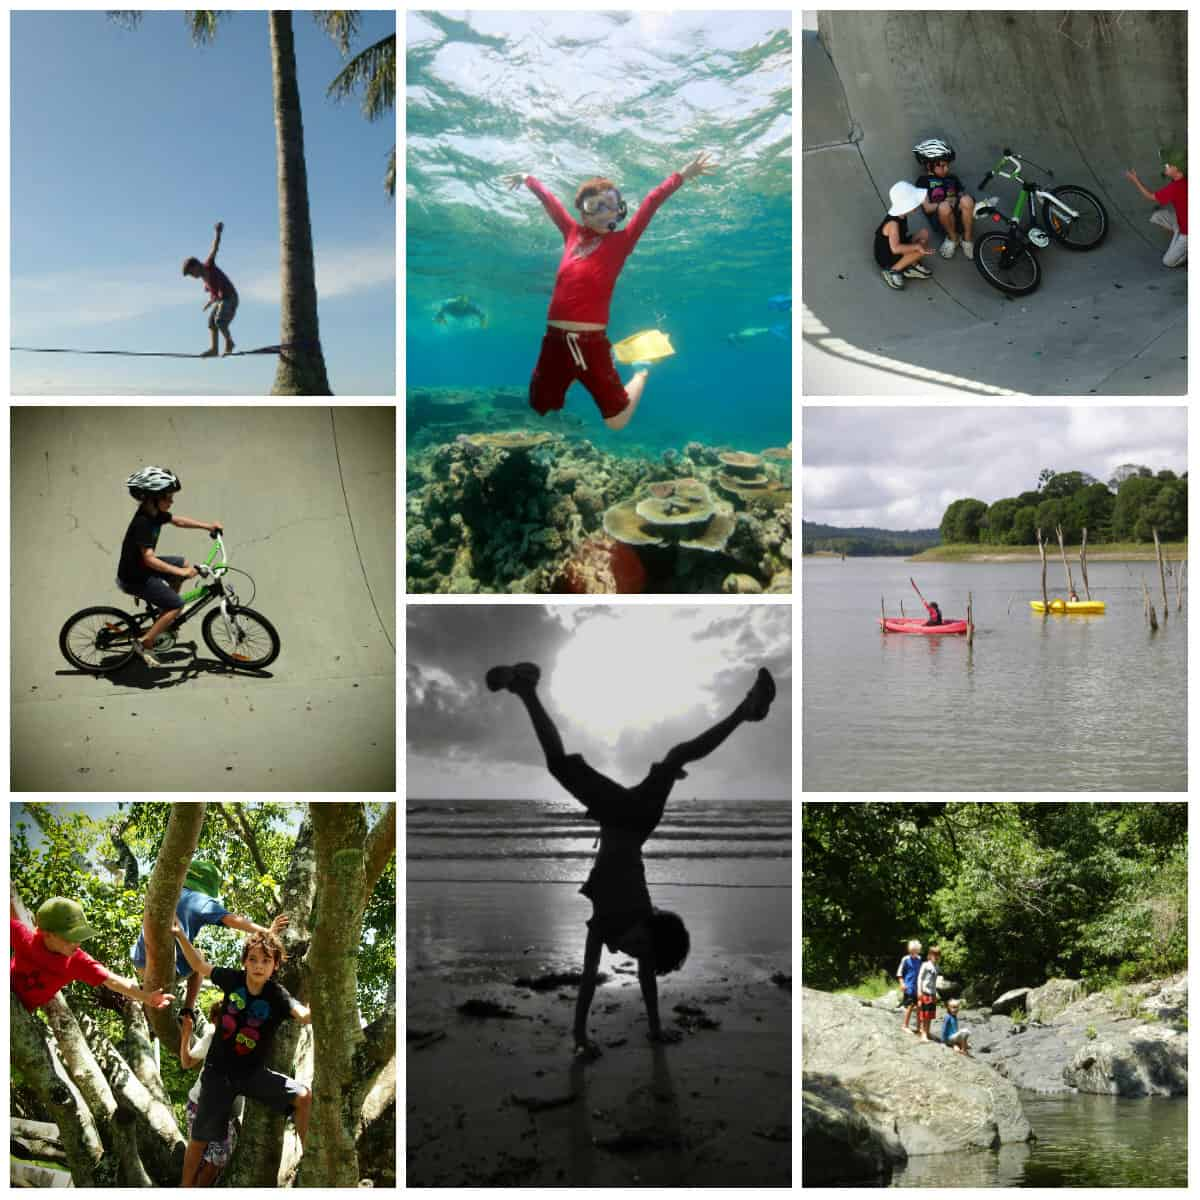 writing a homeschooling report for Queensland. This is the collage I submitted as part of his PE report.